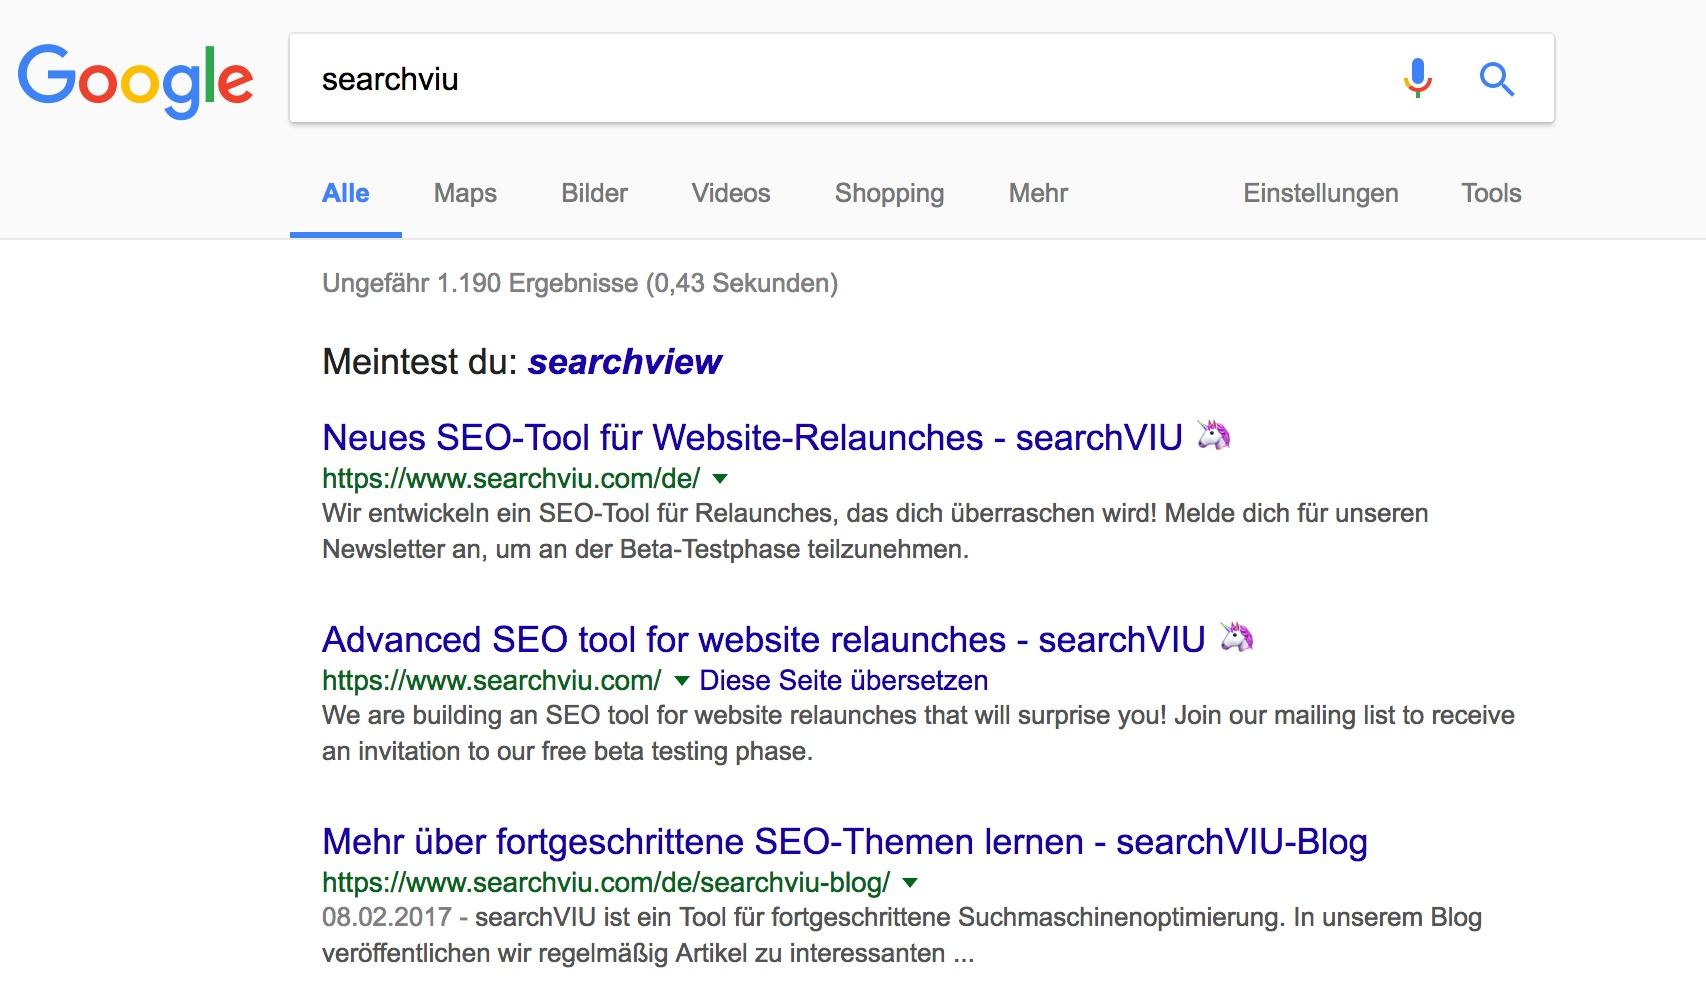 Search results for searchVIU after removing hreflang